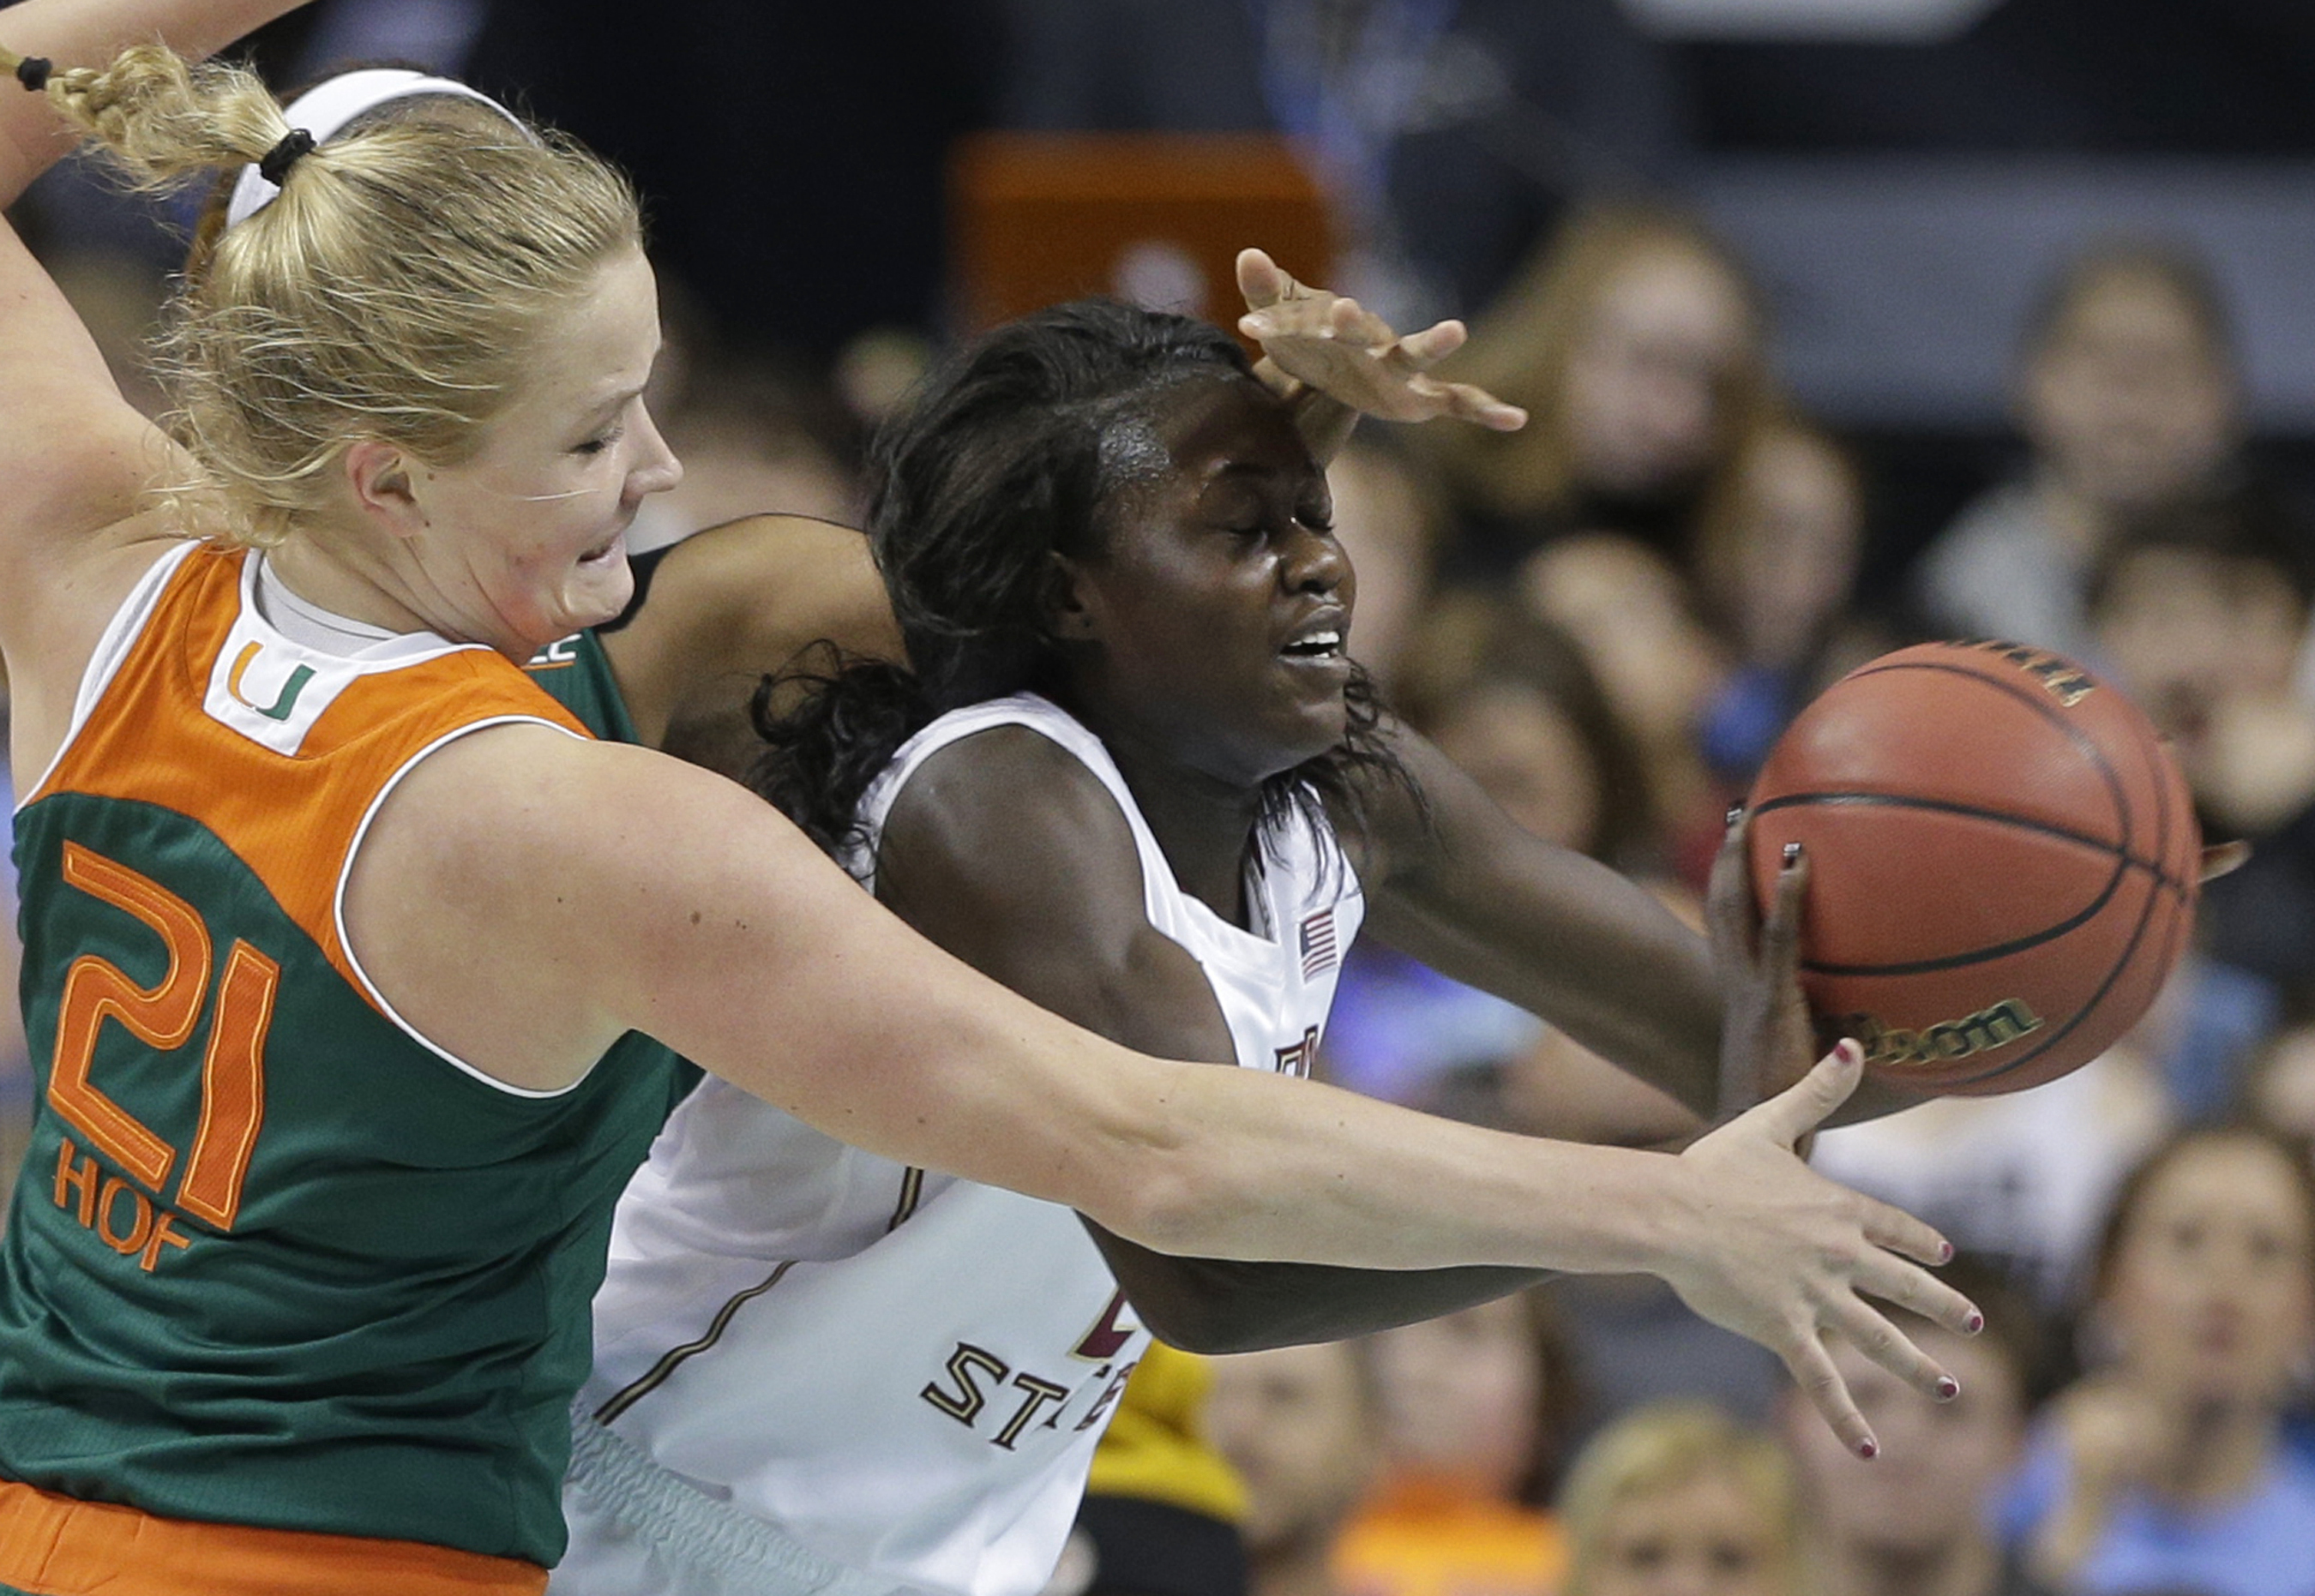 Florida State's Adut Bulgak, right, catches a ball as Miami's Emese Hof, left, of the Netherlands, defends in the first half of an NCAA women's Atlantic Coast Conference basketball game in Greensboro, N.C., Friday, March 4, 2016. (AP Photo/Chuck Burton)